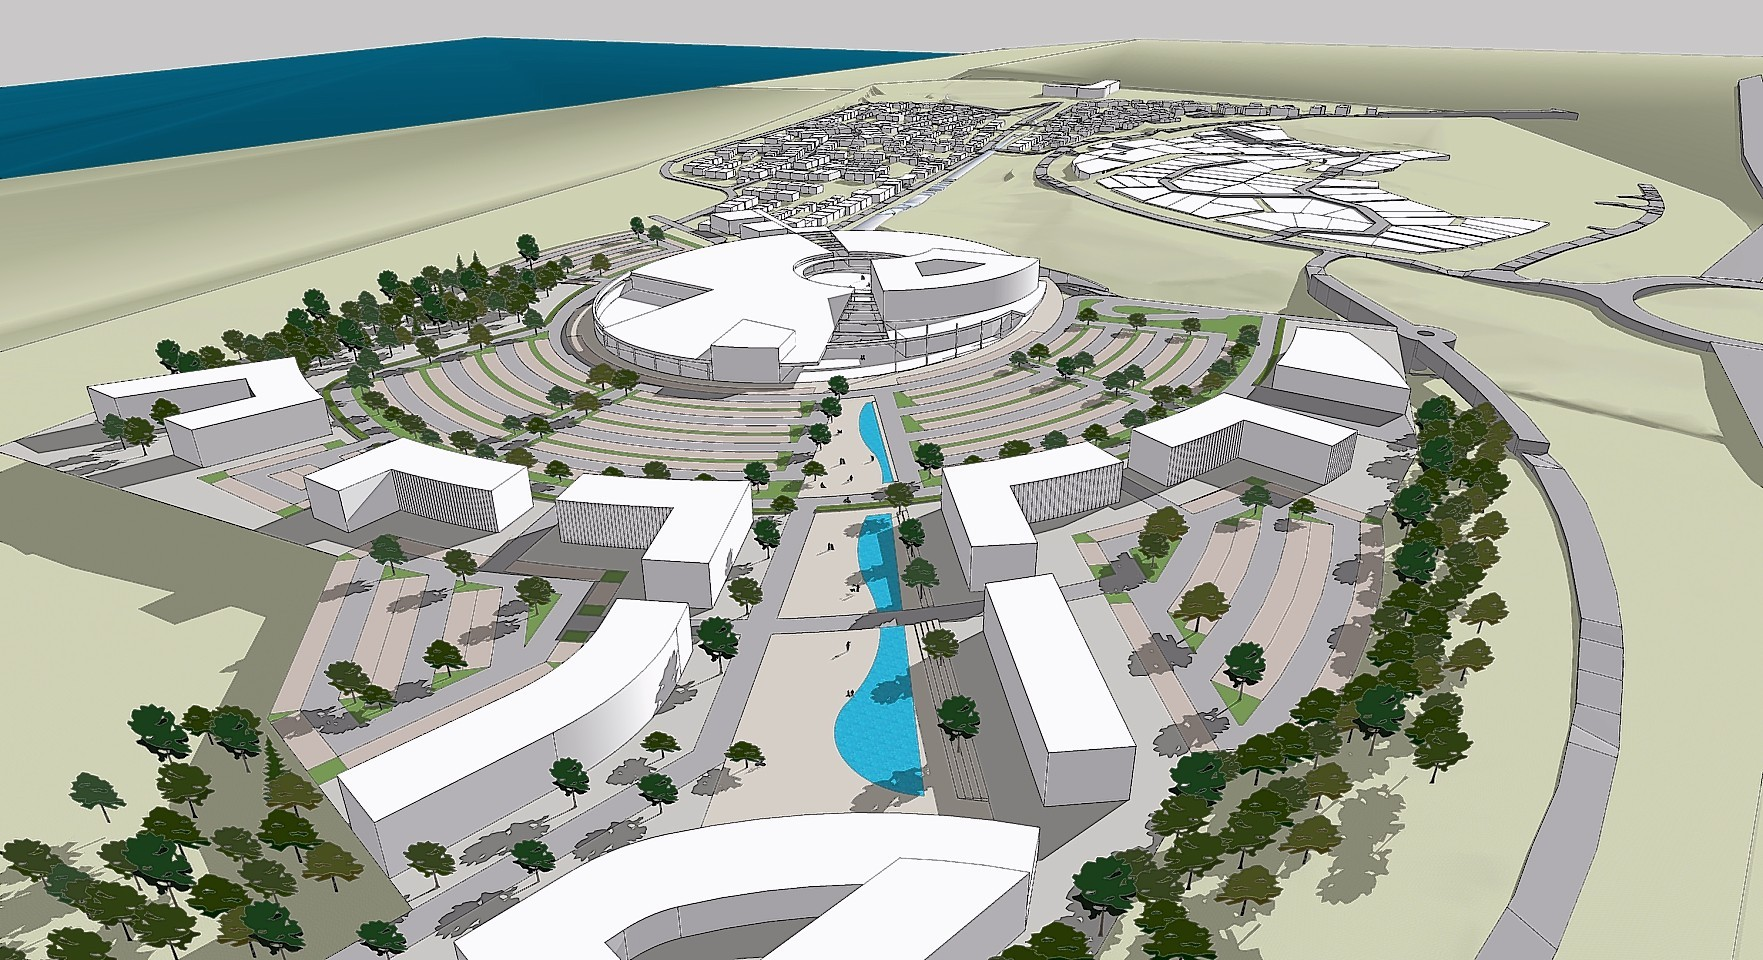 New artists impression of the proposed £140 million development at Blackdog.